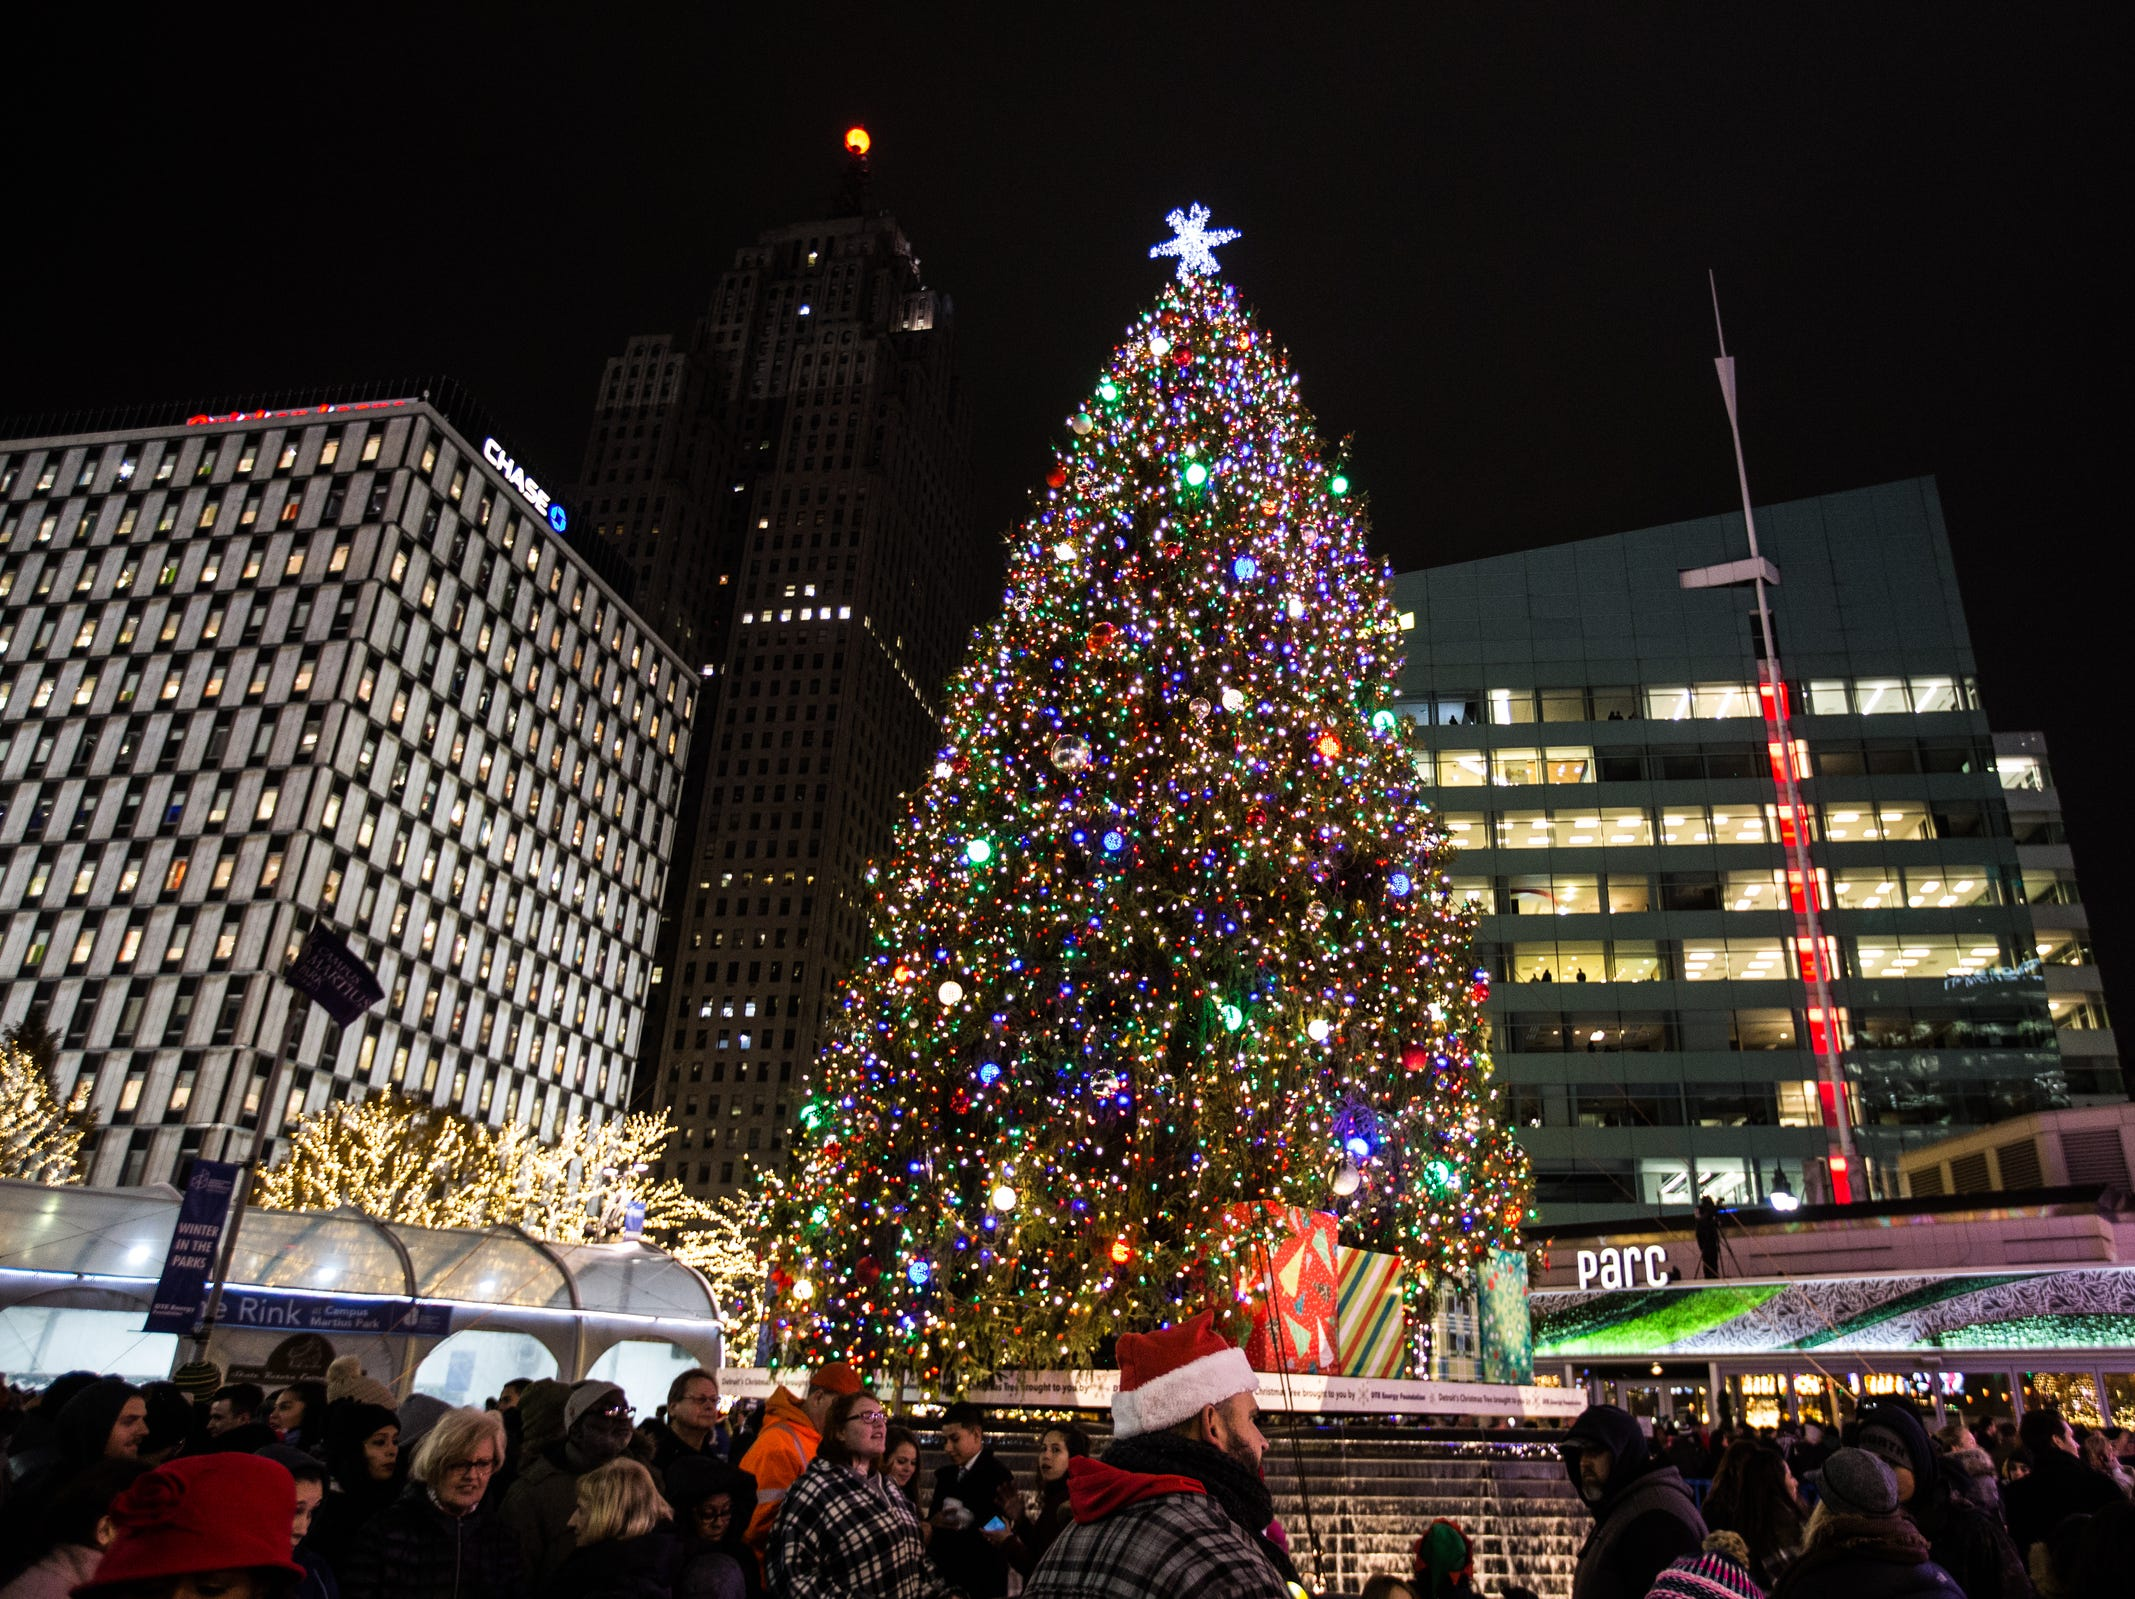 People take photos during the annual tree lighting event at Campus Martius Park in downtown Detroit on Friday, November 16, 2018.